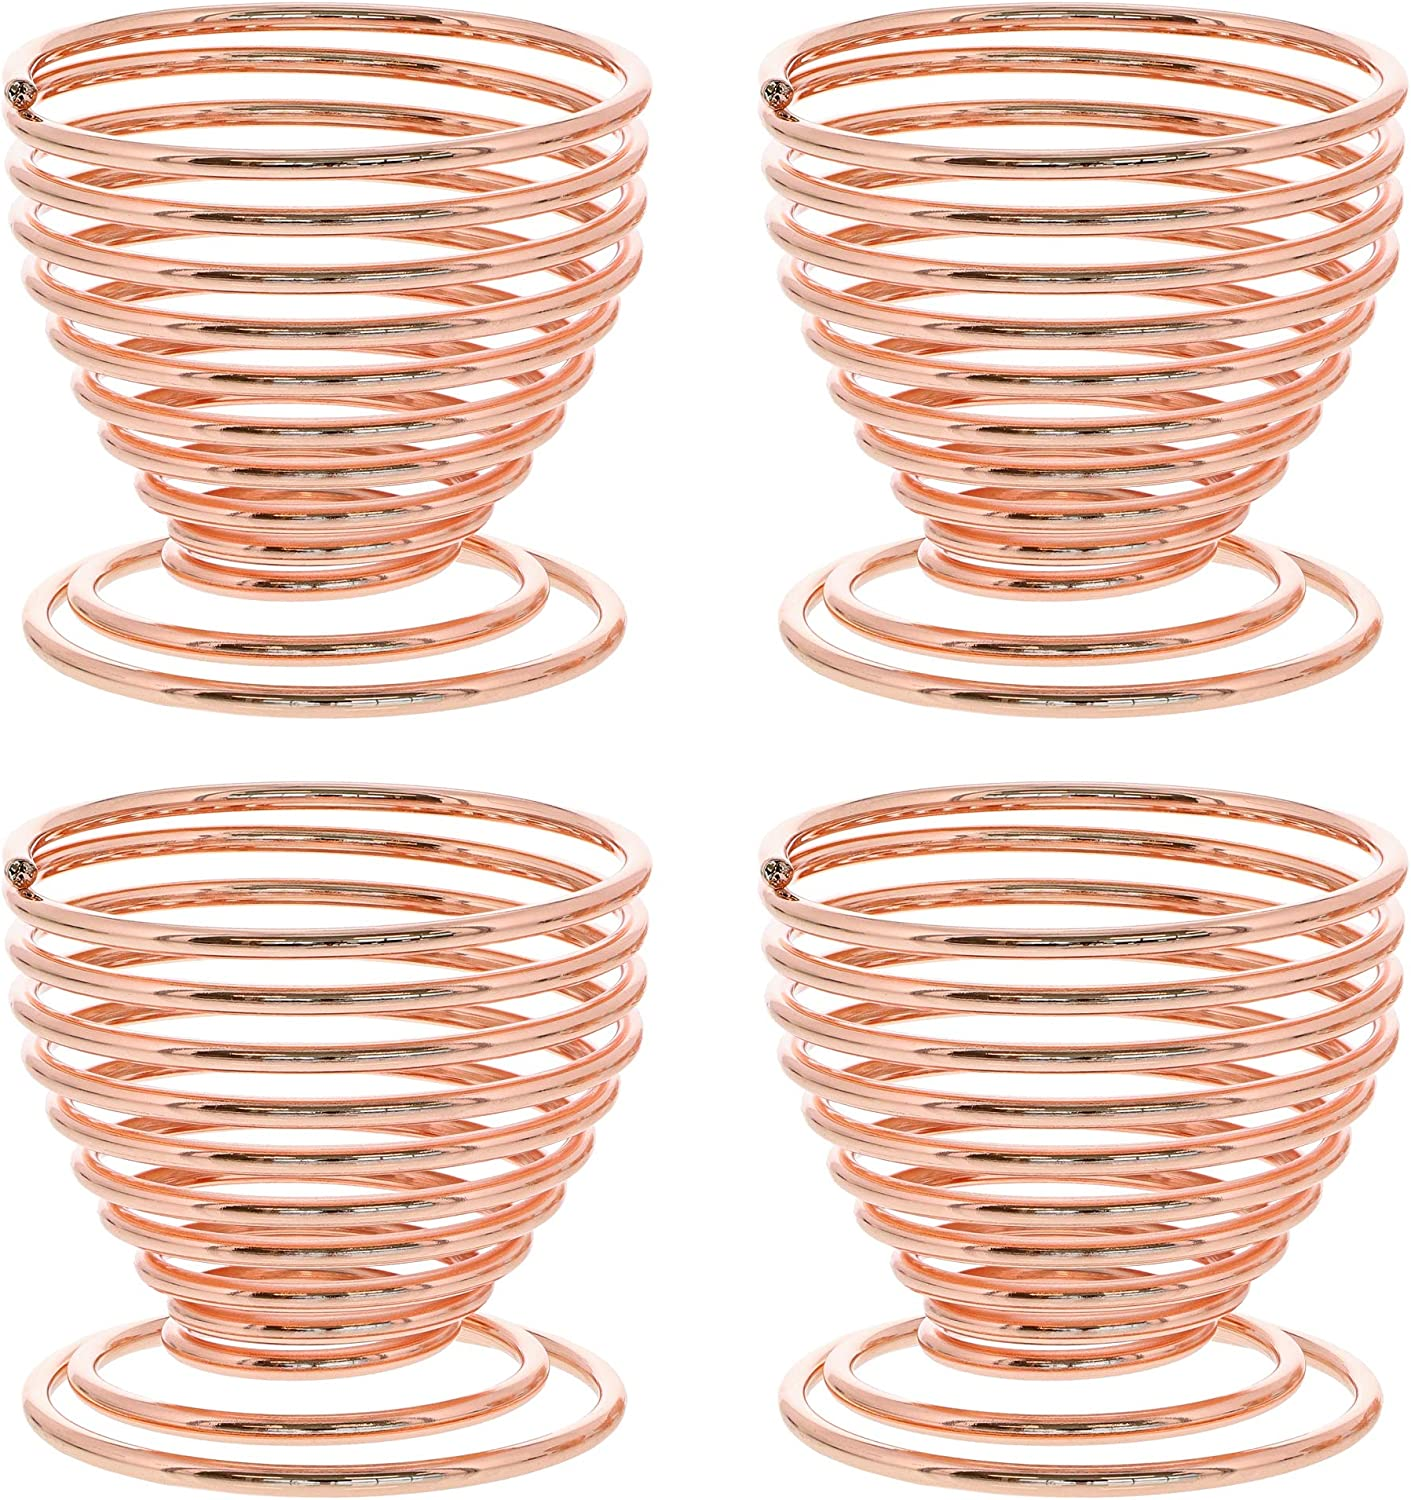 Makeup Sponge Holder, Drying Stand (Rose Gold, 4 Pack)